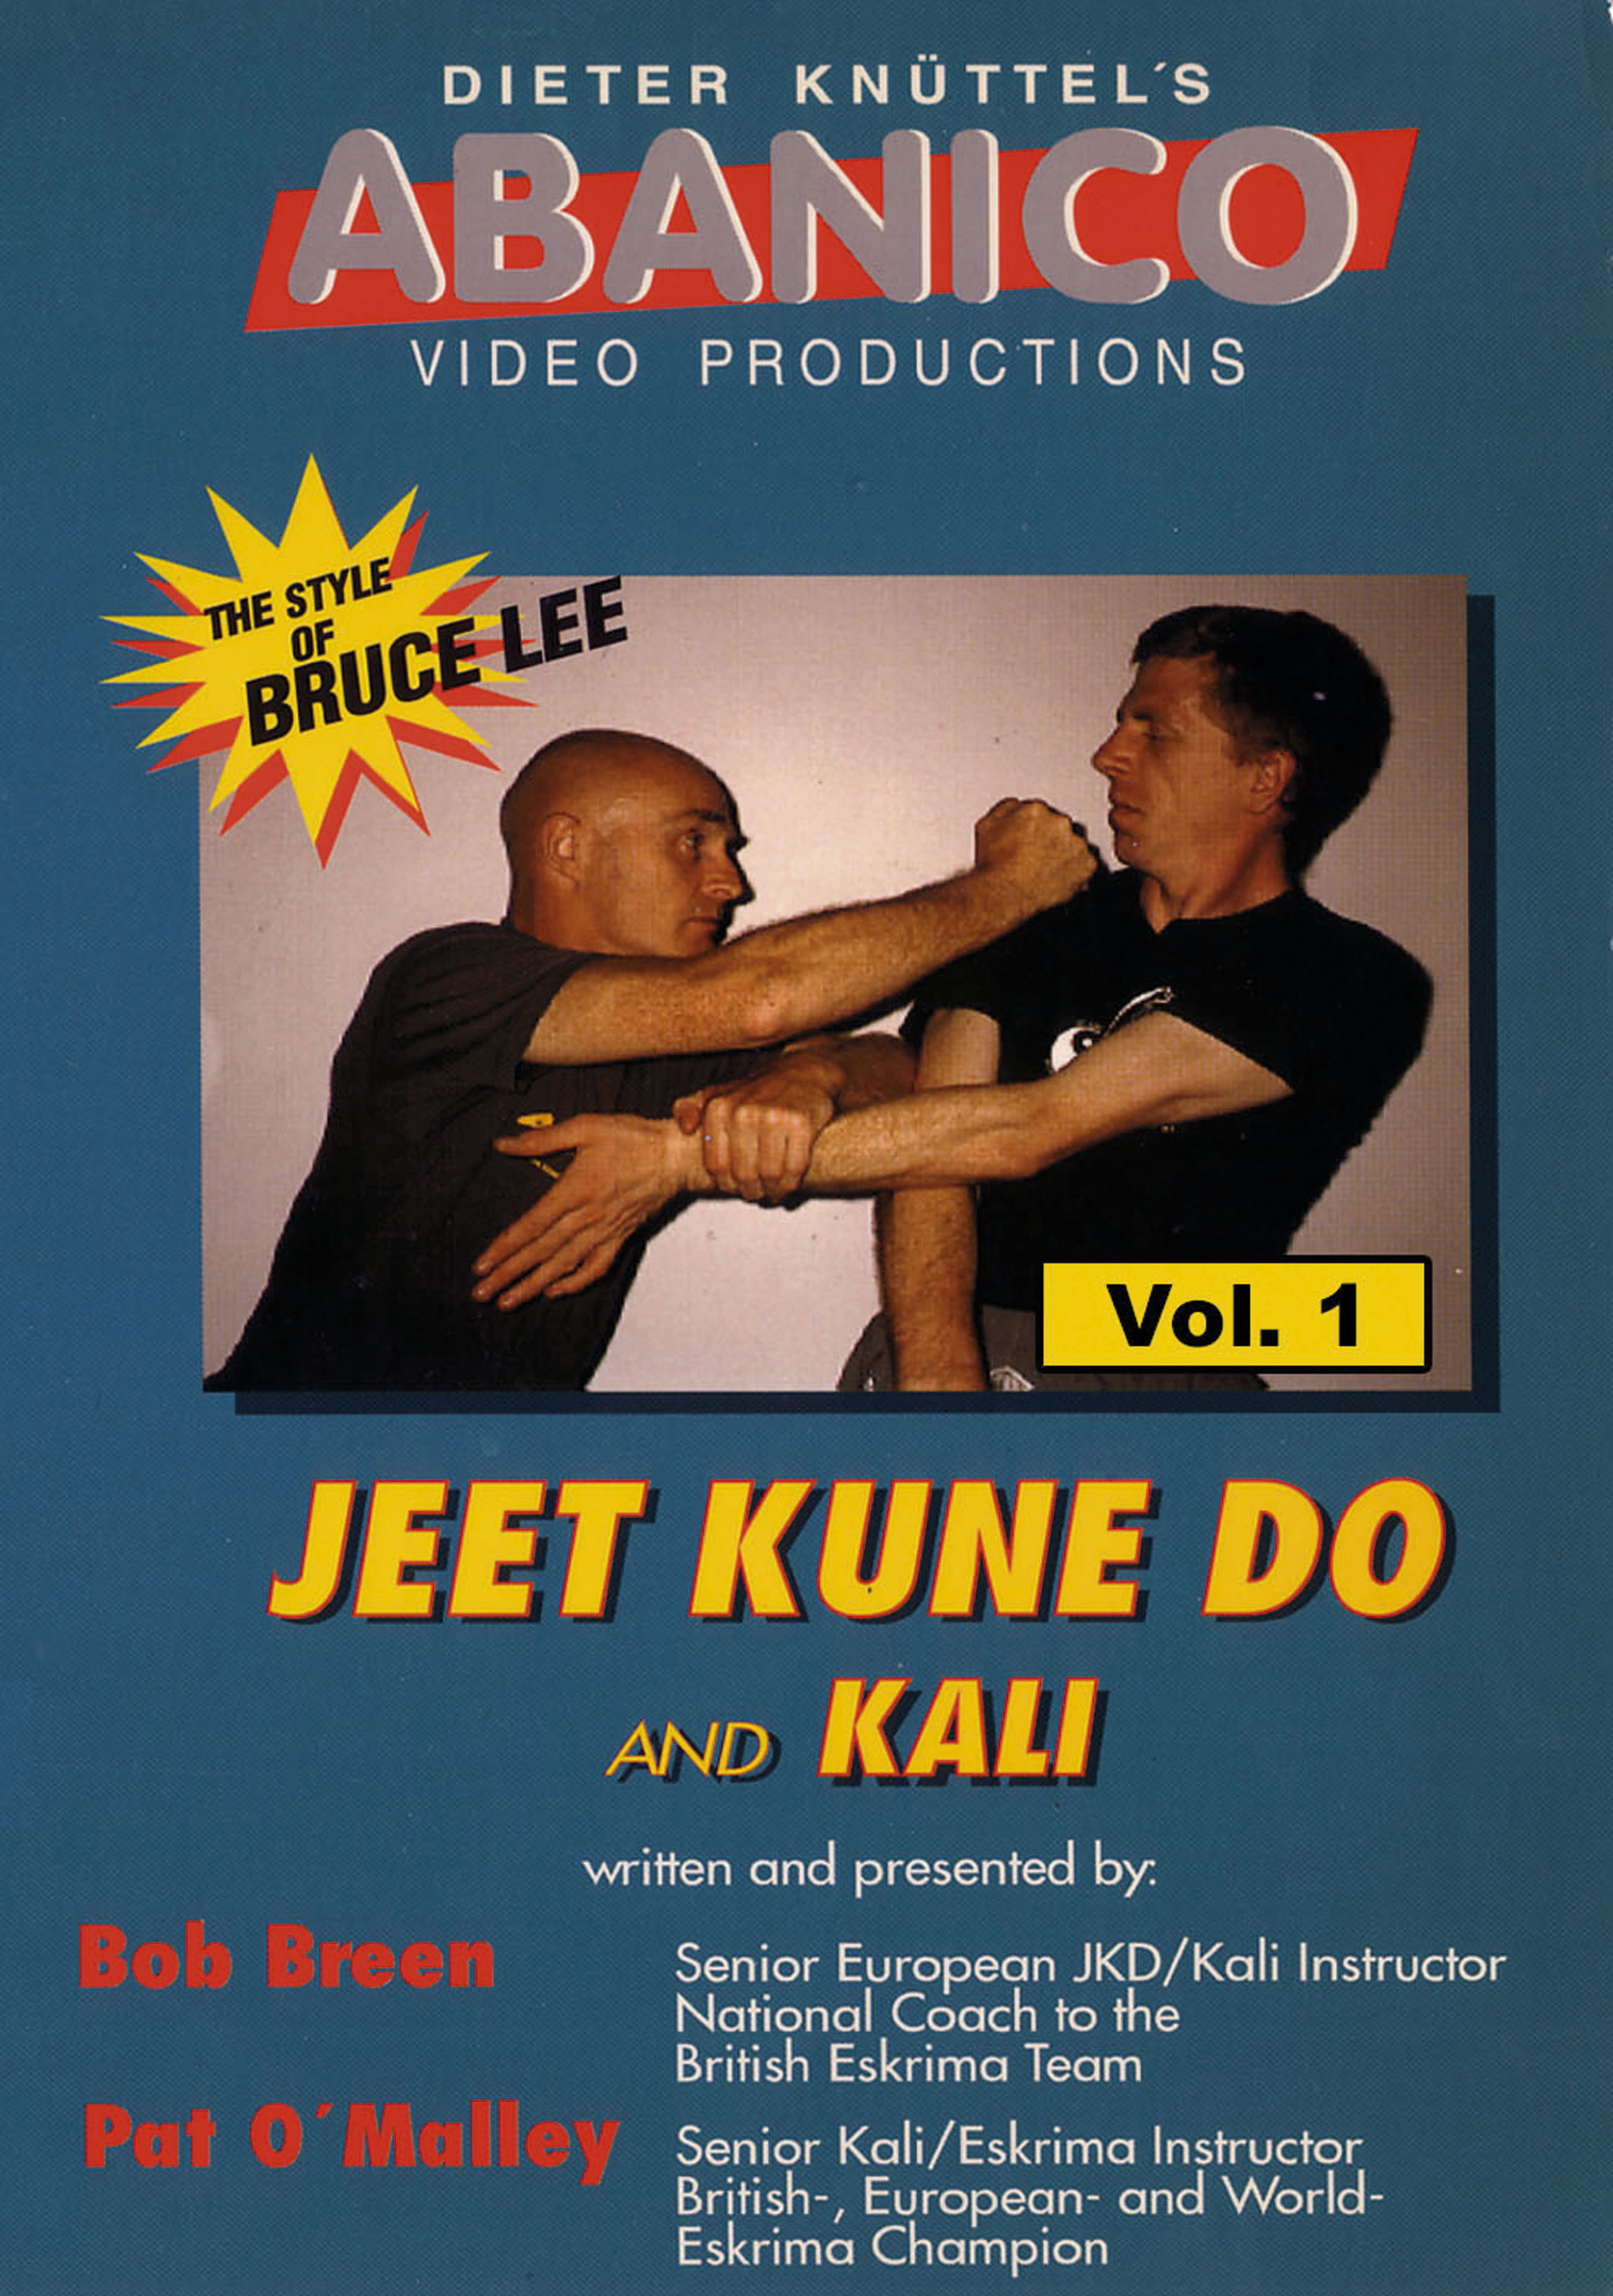 jeet kune do and kali 1 download en abanico gmbh. Black Bedroom Furniture Sets. Home Design Ideas